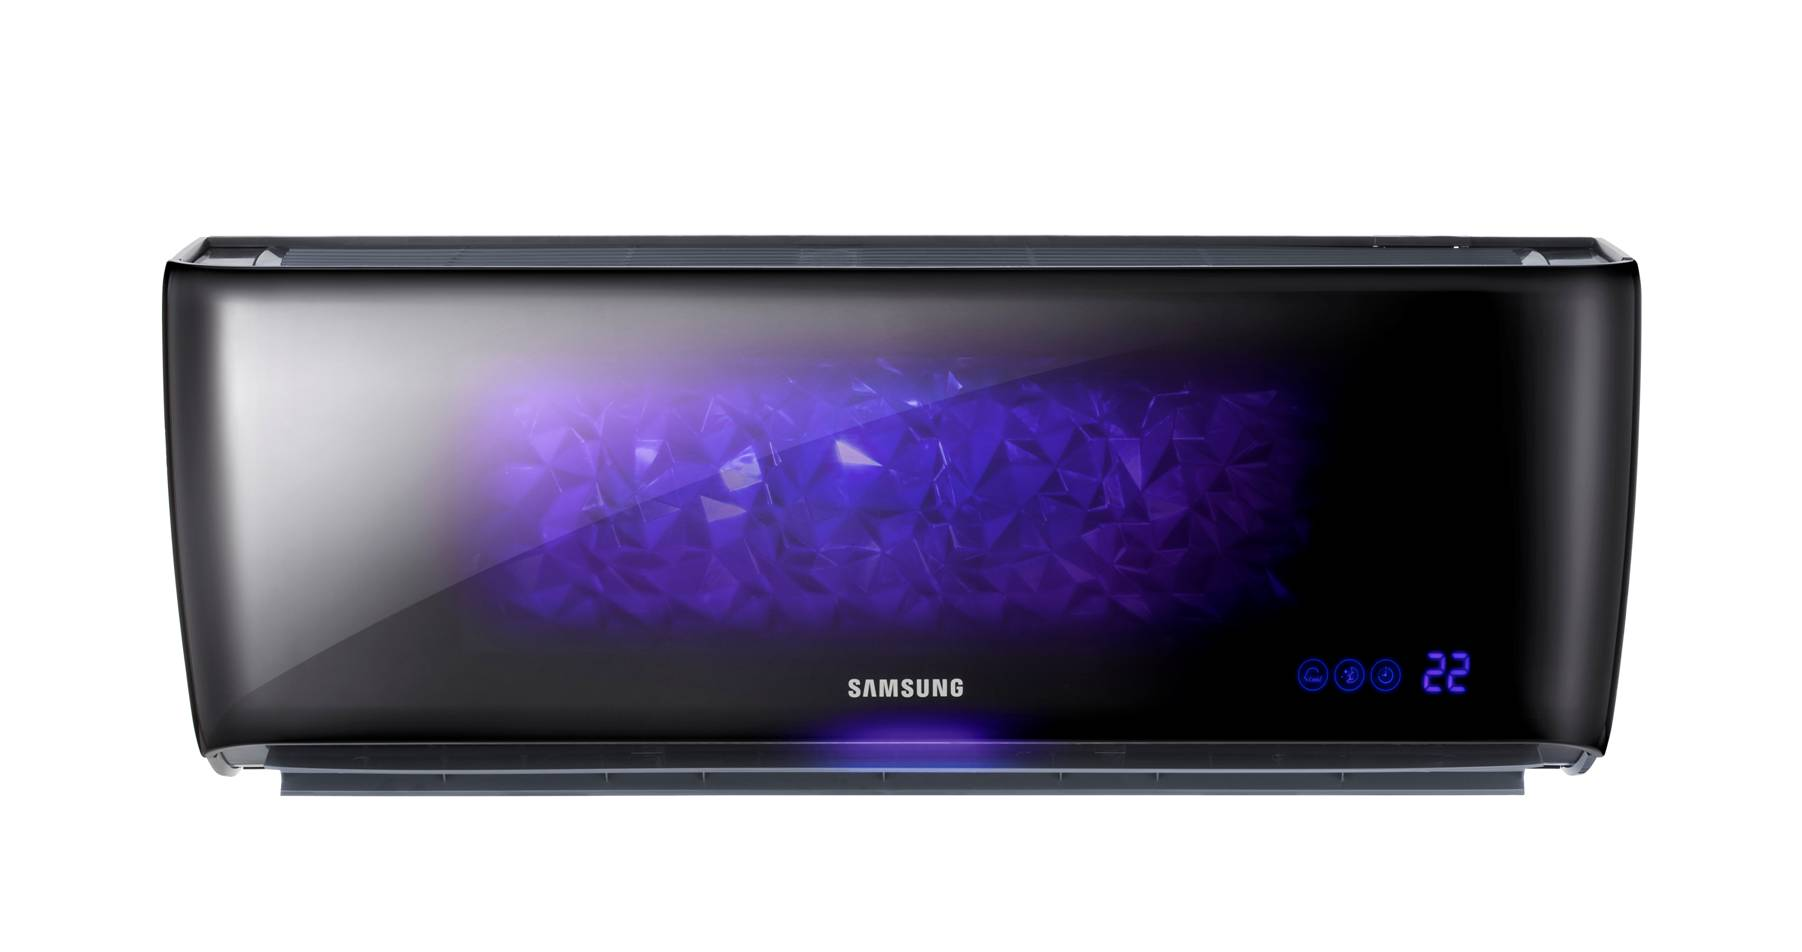 Samsung Electronics Levant Launches Its New Jungfrau Ac In